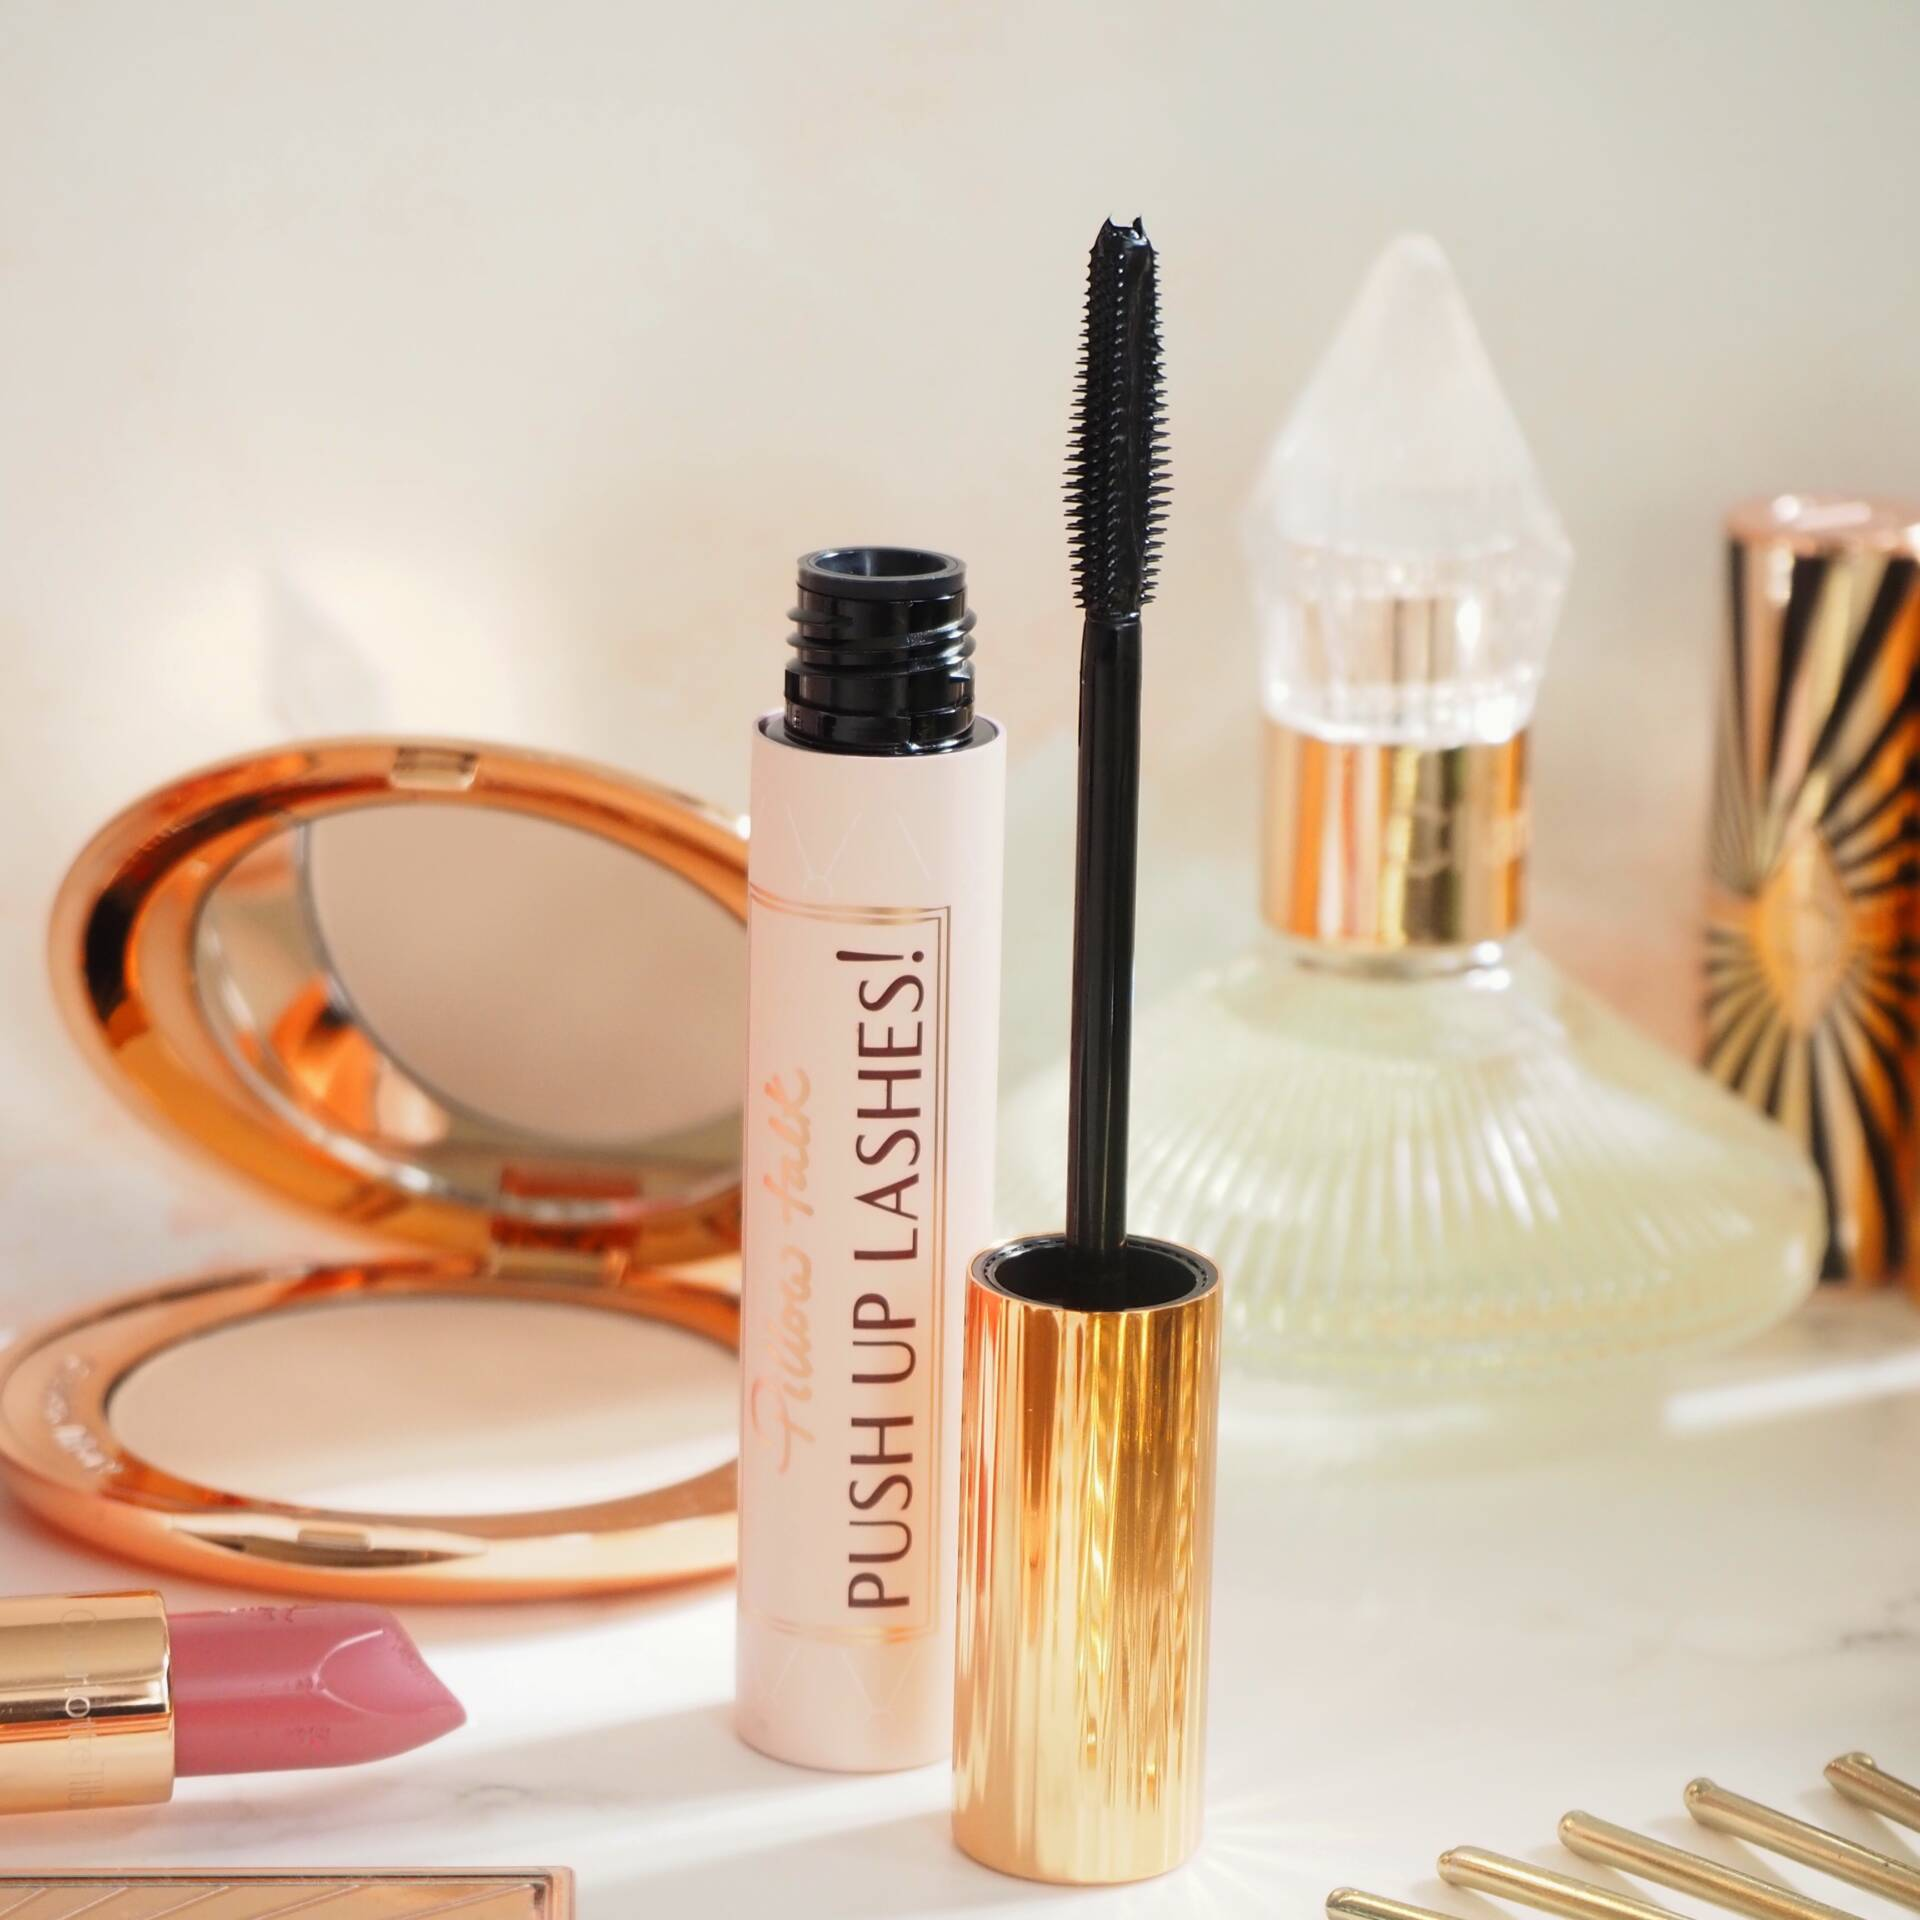 Charlotte Tilbury Pillow Talk Push Up Lashes Mascara Review and Comparison